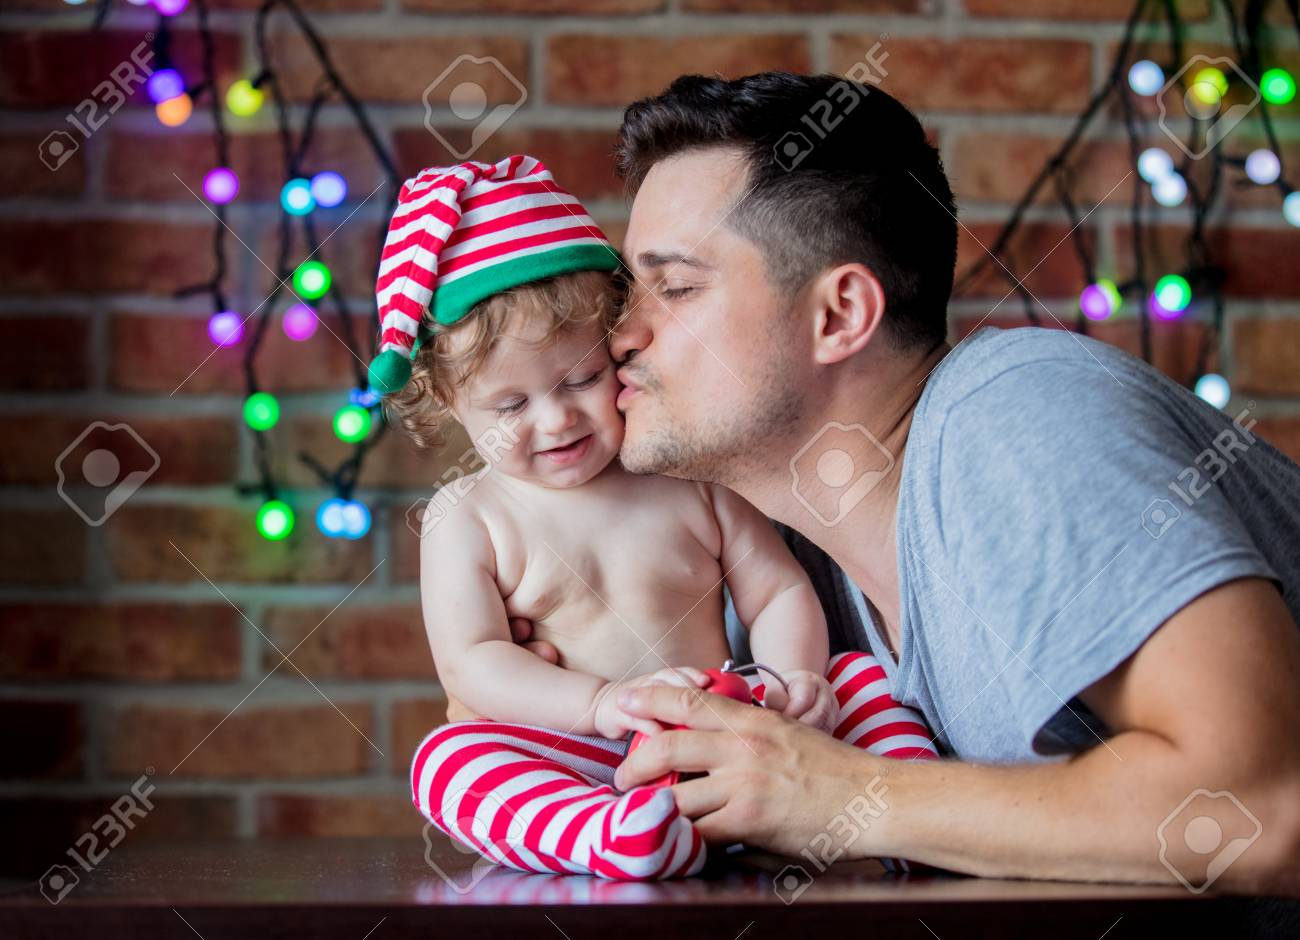 c9e1c879ef305 Beautiful little baby boy in elf hat and father with alarm clock and fairy  lights on